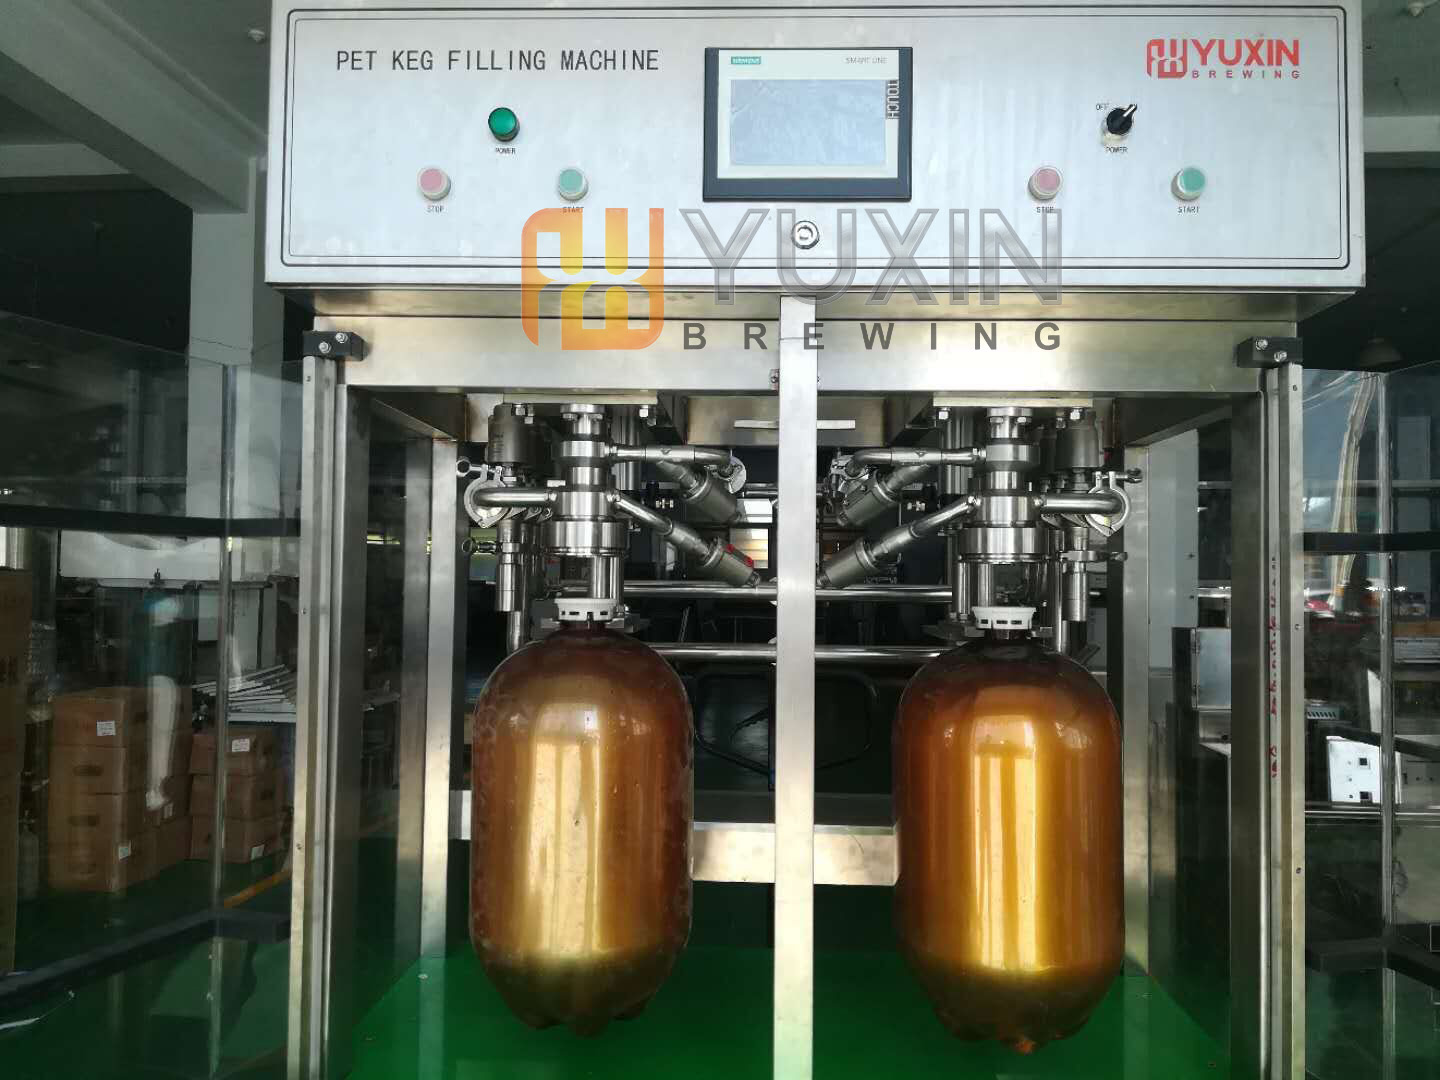 PET keg filling machine,PET keg filling,keg filling machine